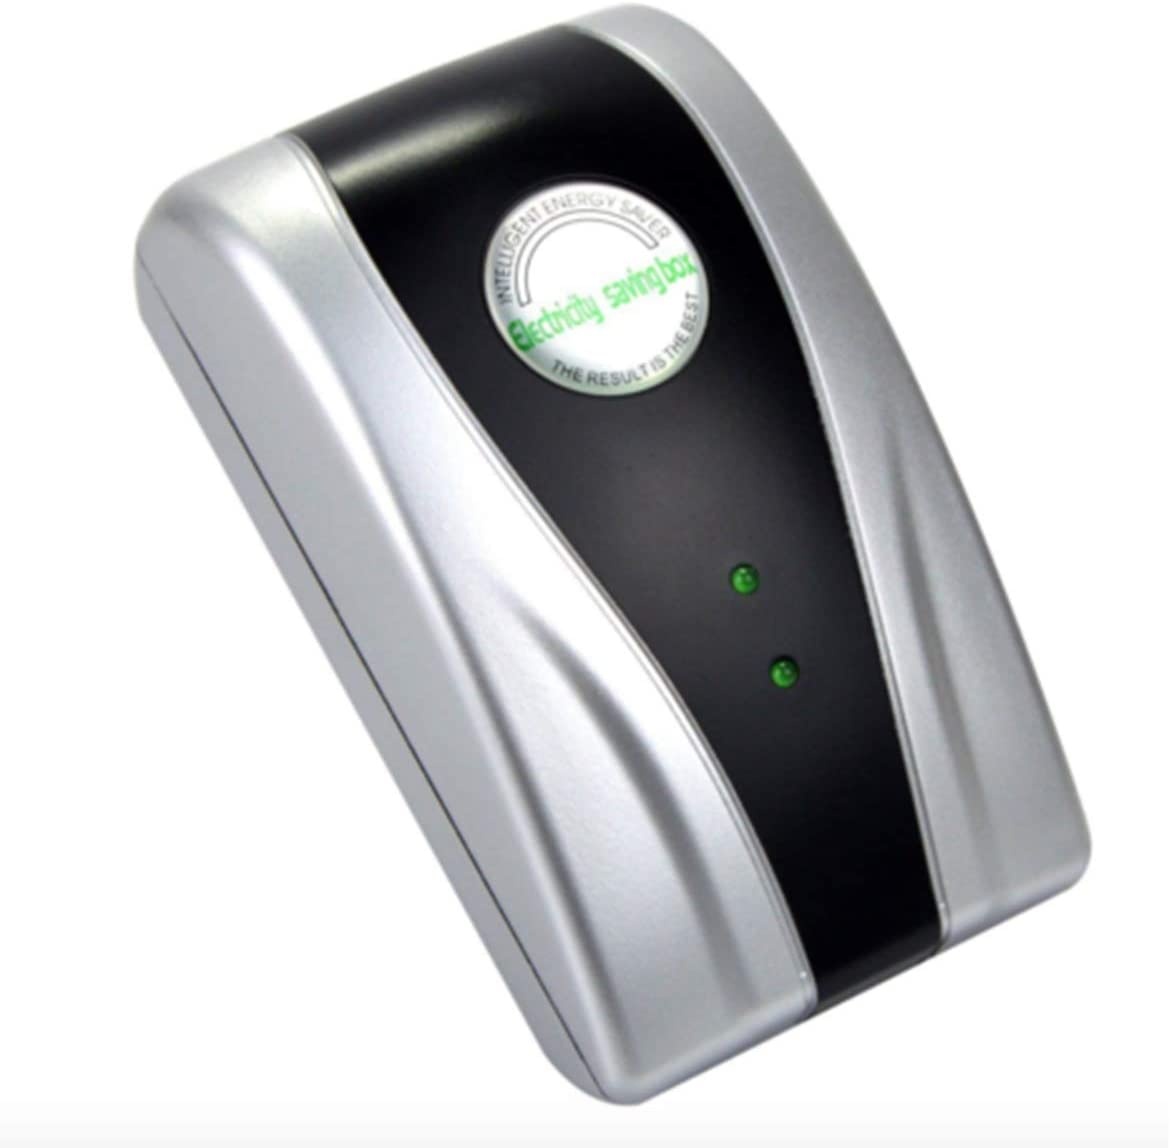 SOONHUA Power Save, 90-250V Electricity Saving Box, Energy Saver Saving Device for Household Office Market Factory